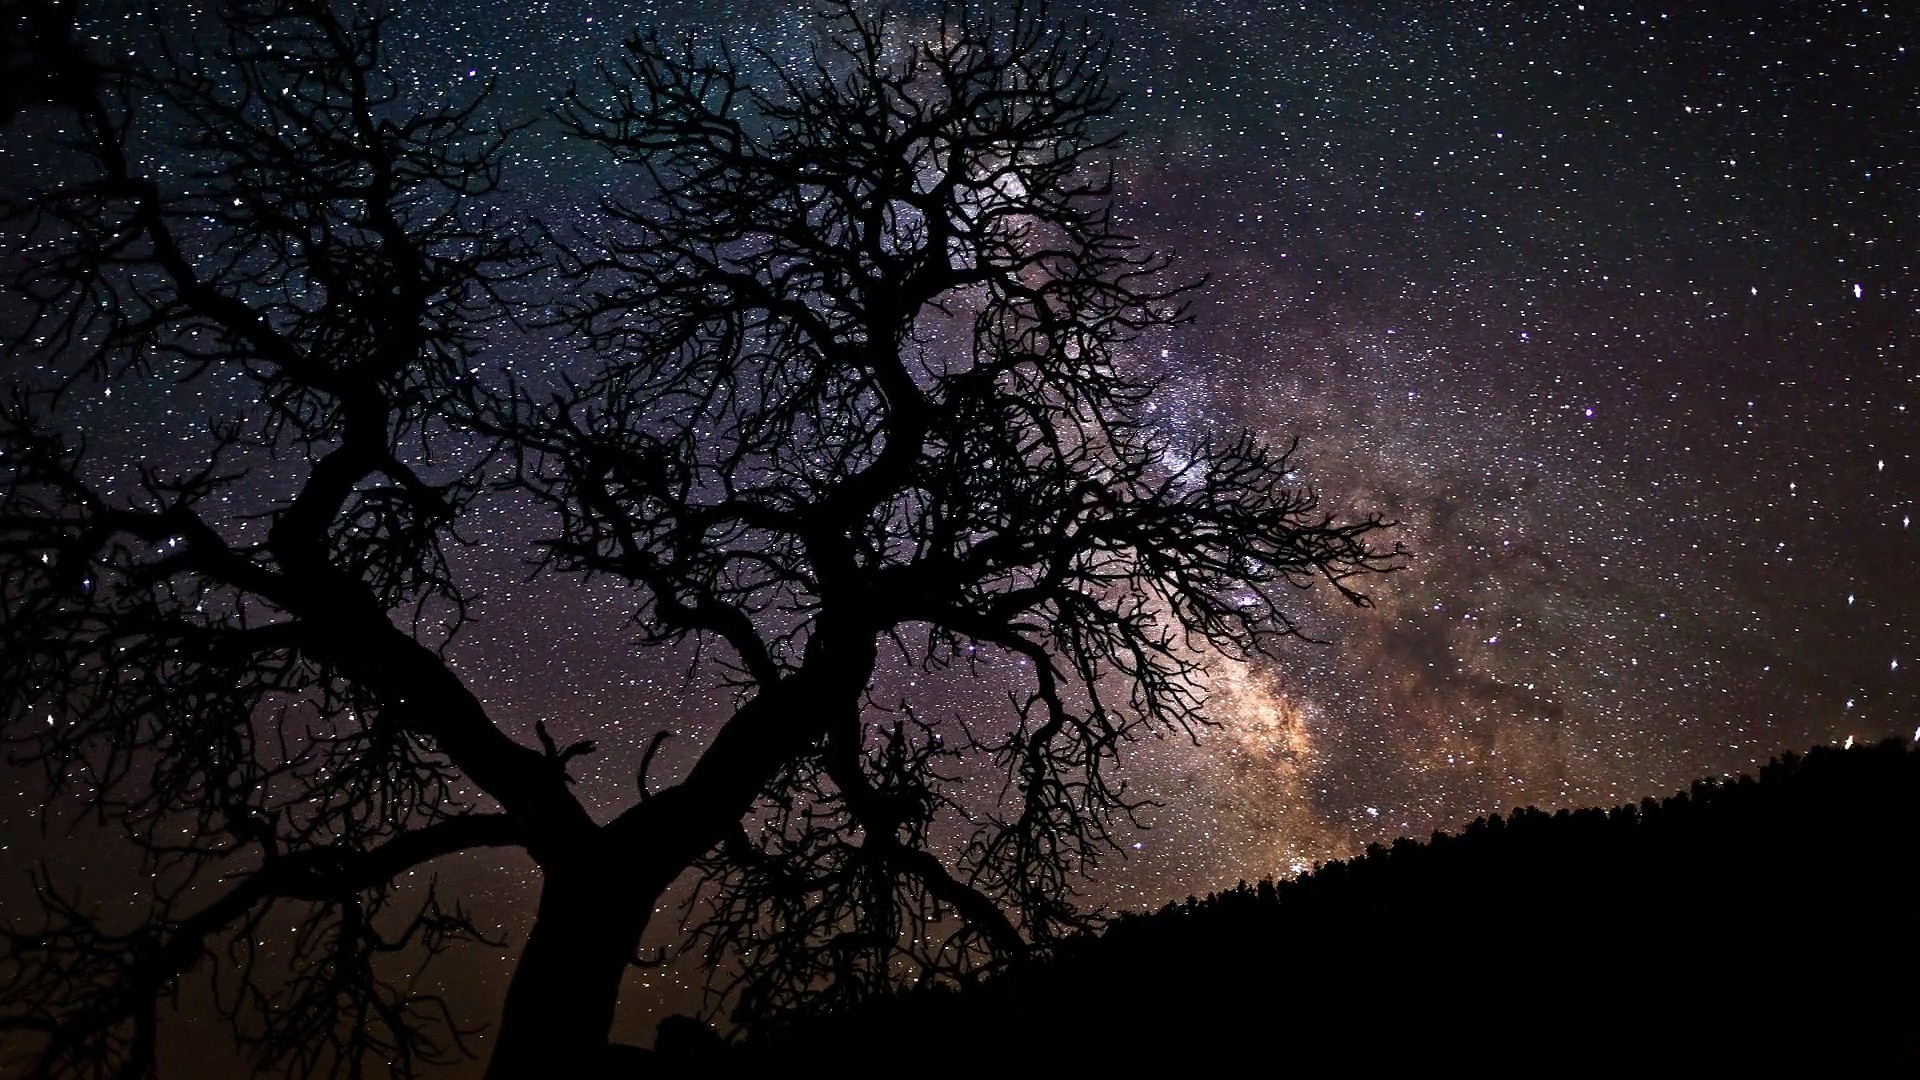 1920x1080 Sky-starry-night-sky-stars-nature-trees-wallpaper-